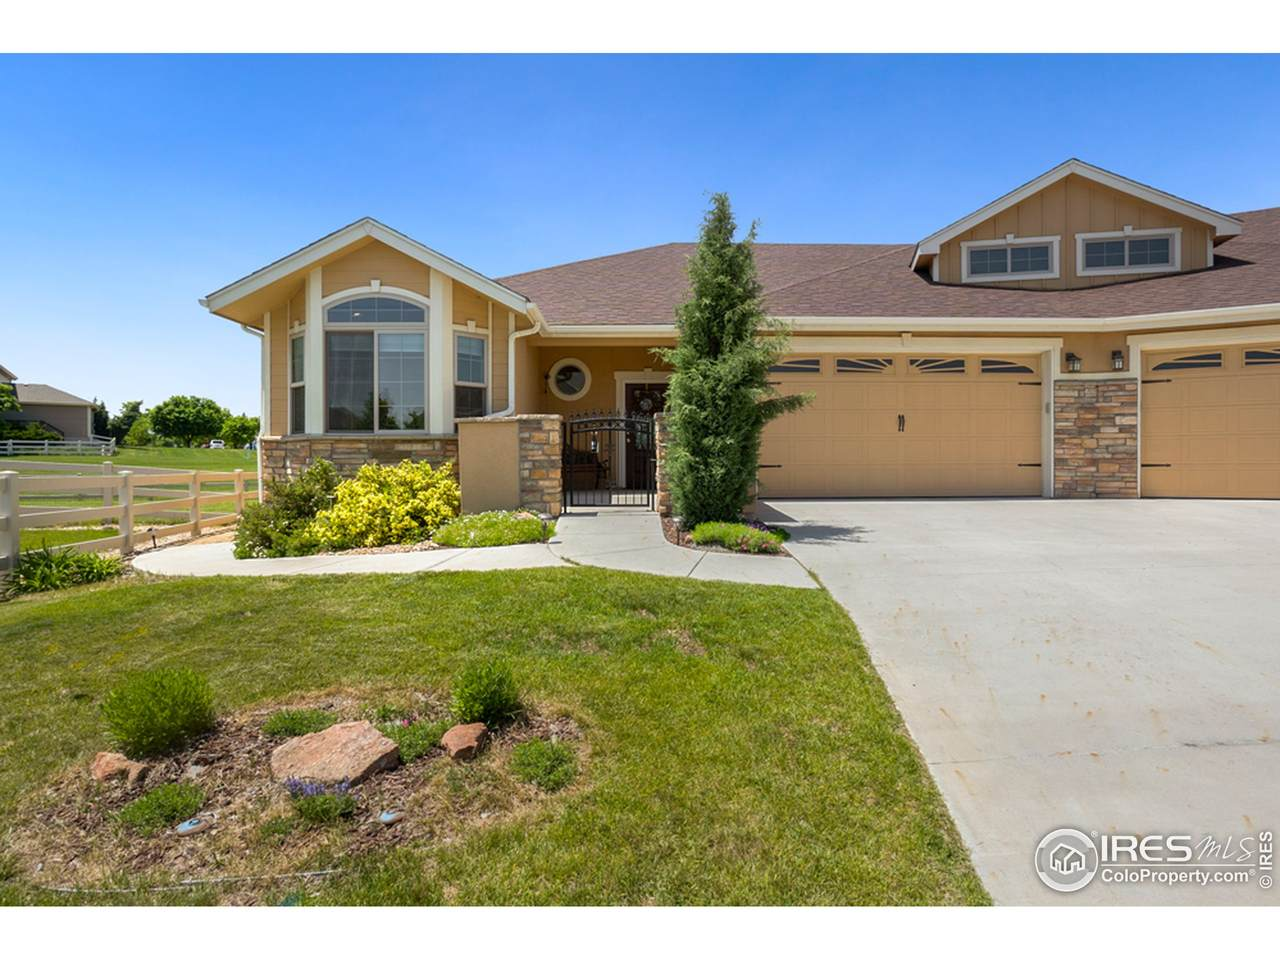 3005 Bryce Dr - Photo 1